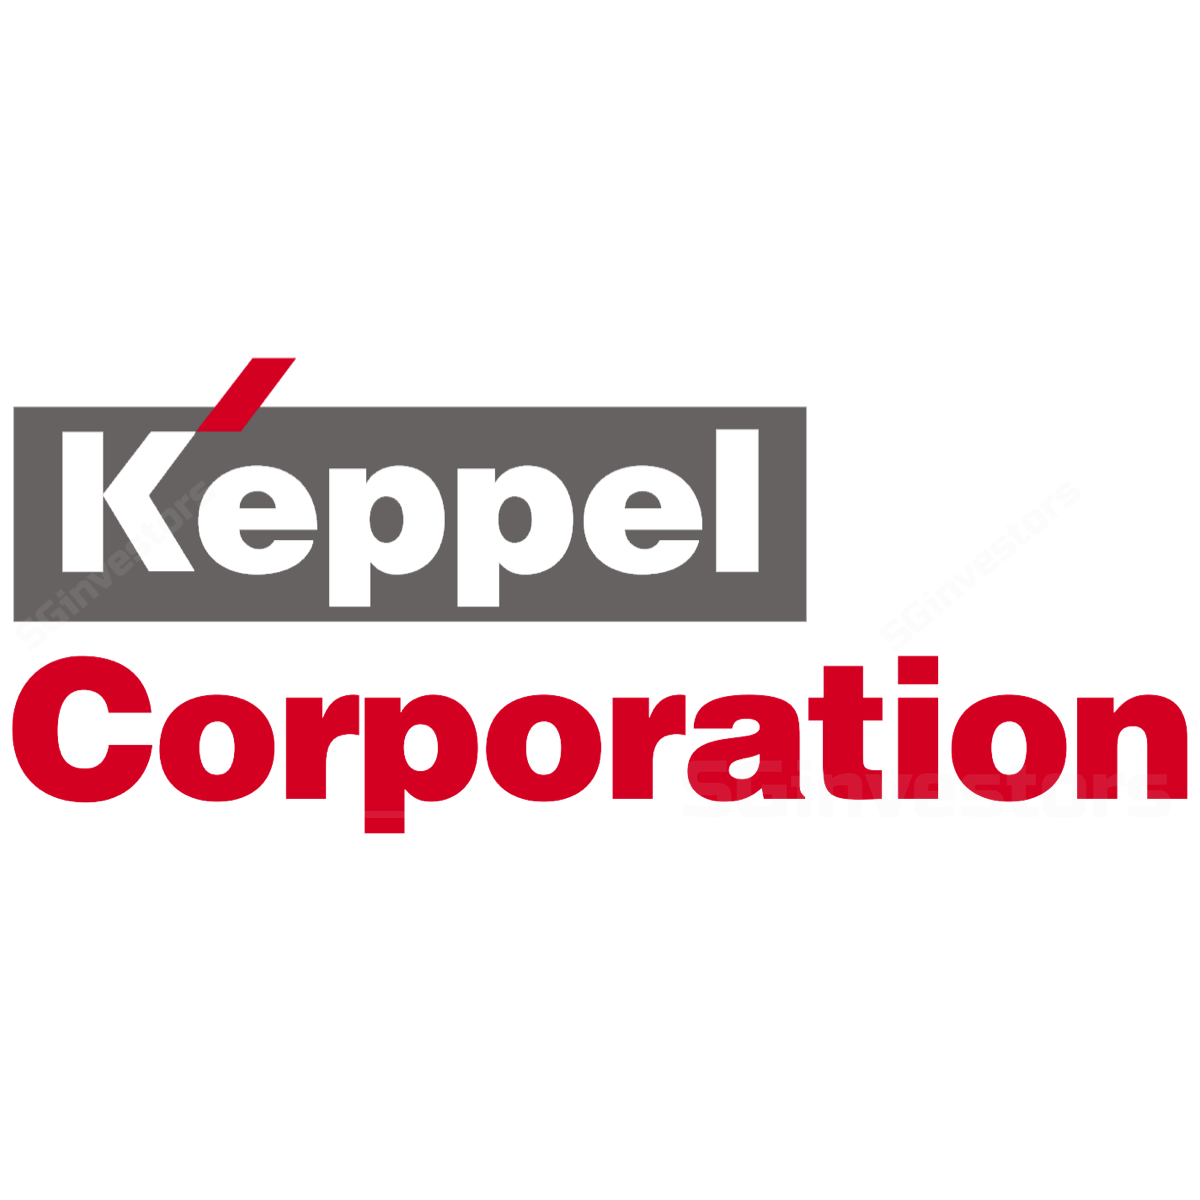 Keppel Corporation (KEP SP) - UOB Kay Hian 2017-12-07: Re-Enter The Dragon: Tianjin To Drive Property Earnings